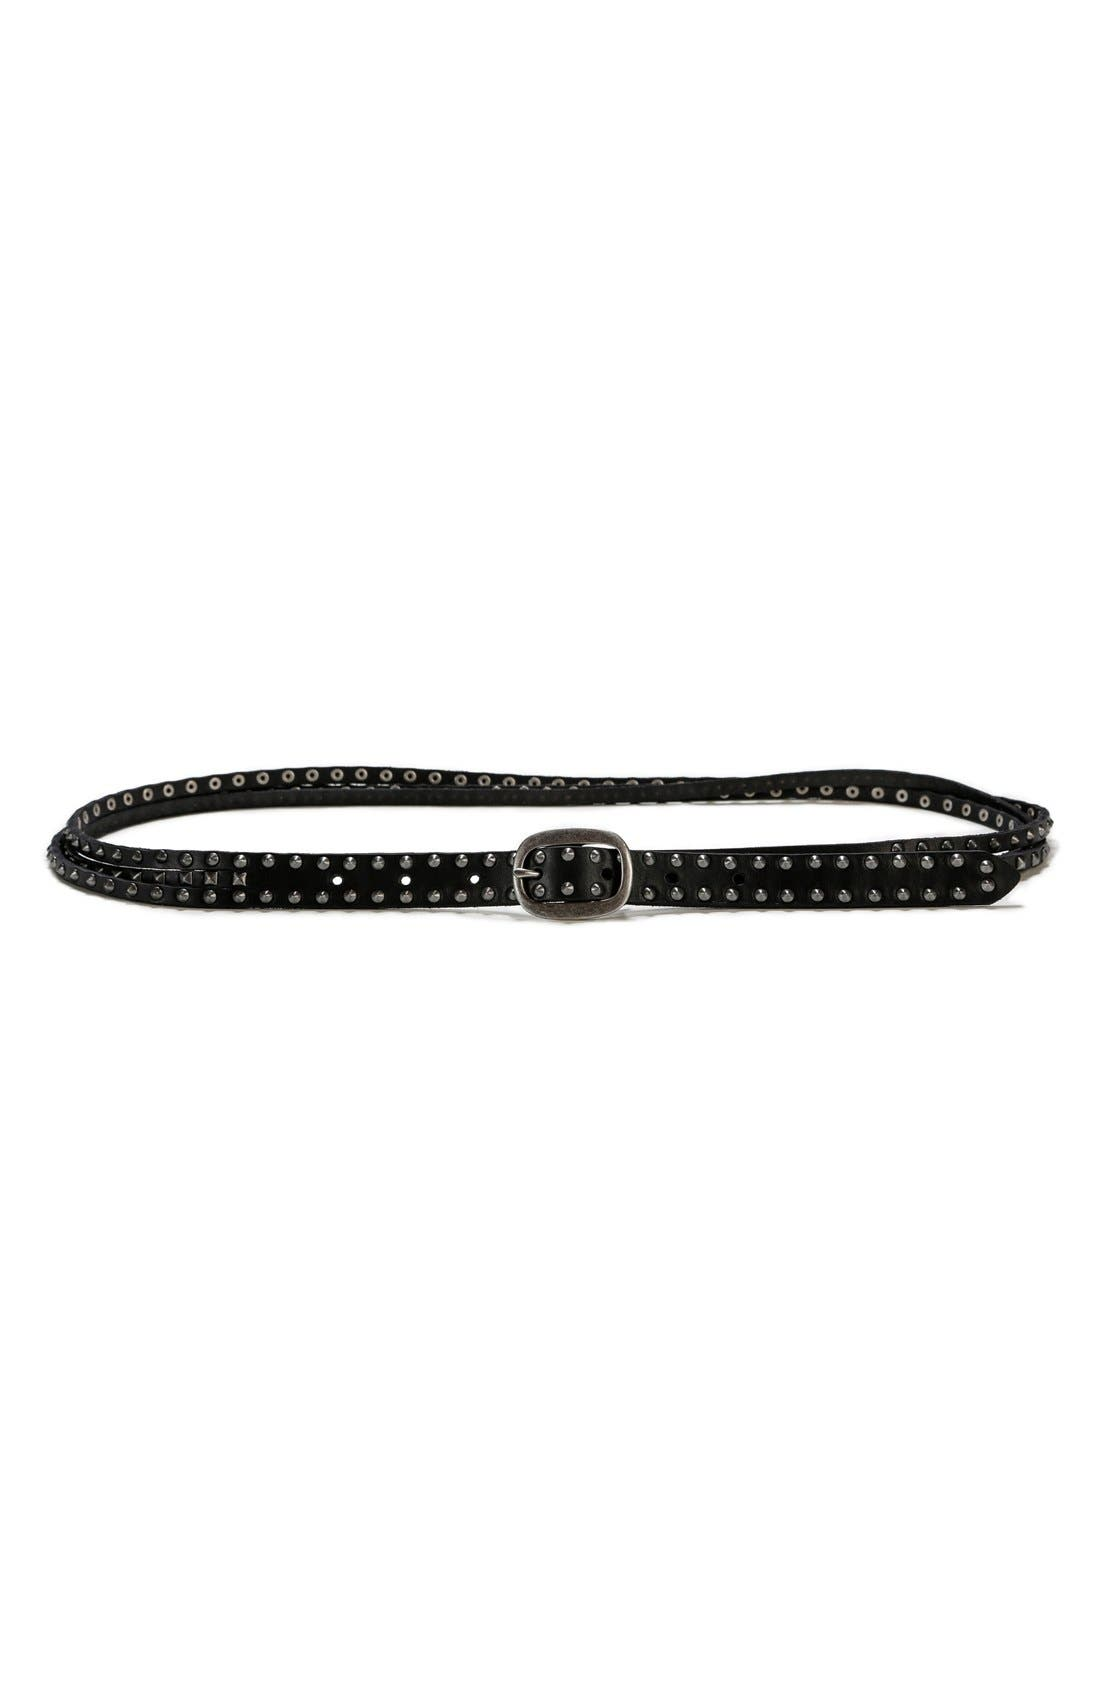 PAIGE 'Avery' Studded Multistrand Leather Belt